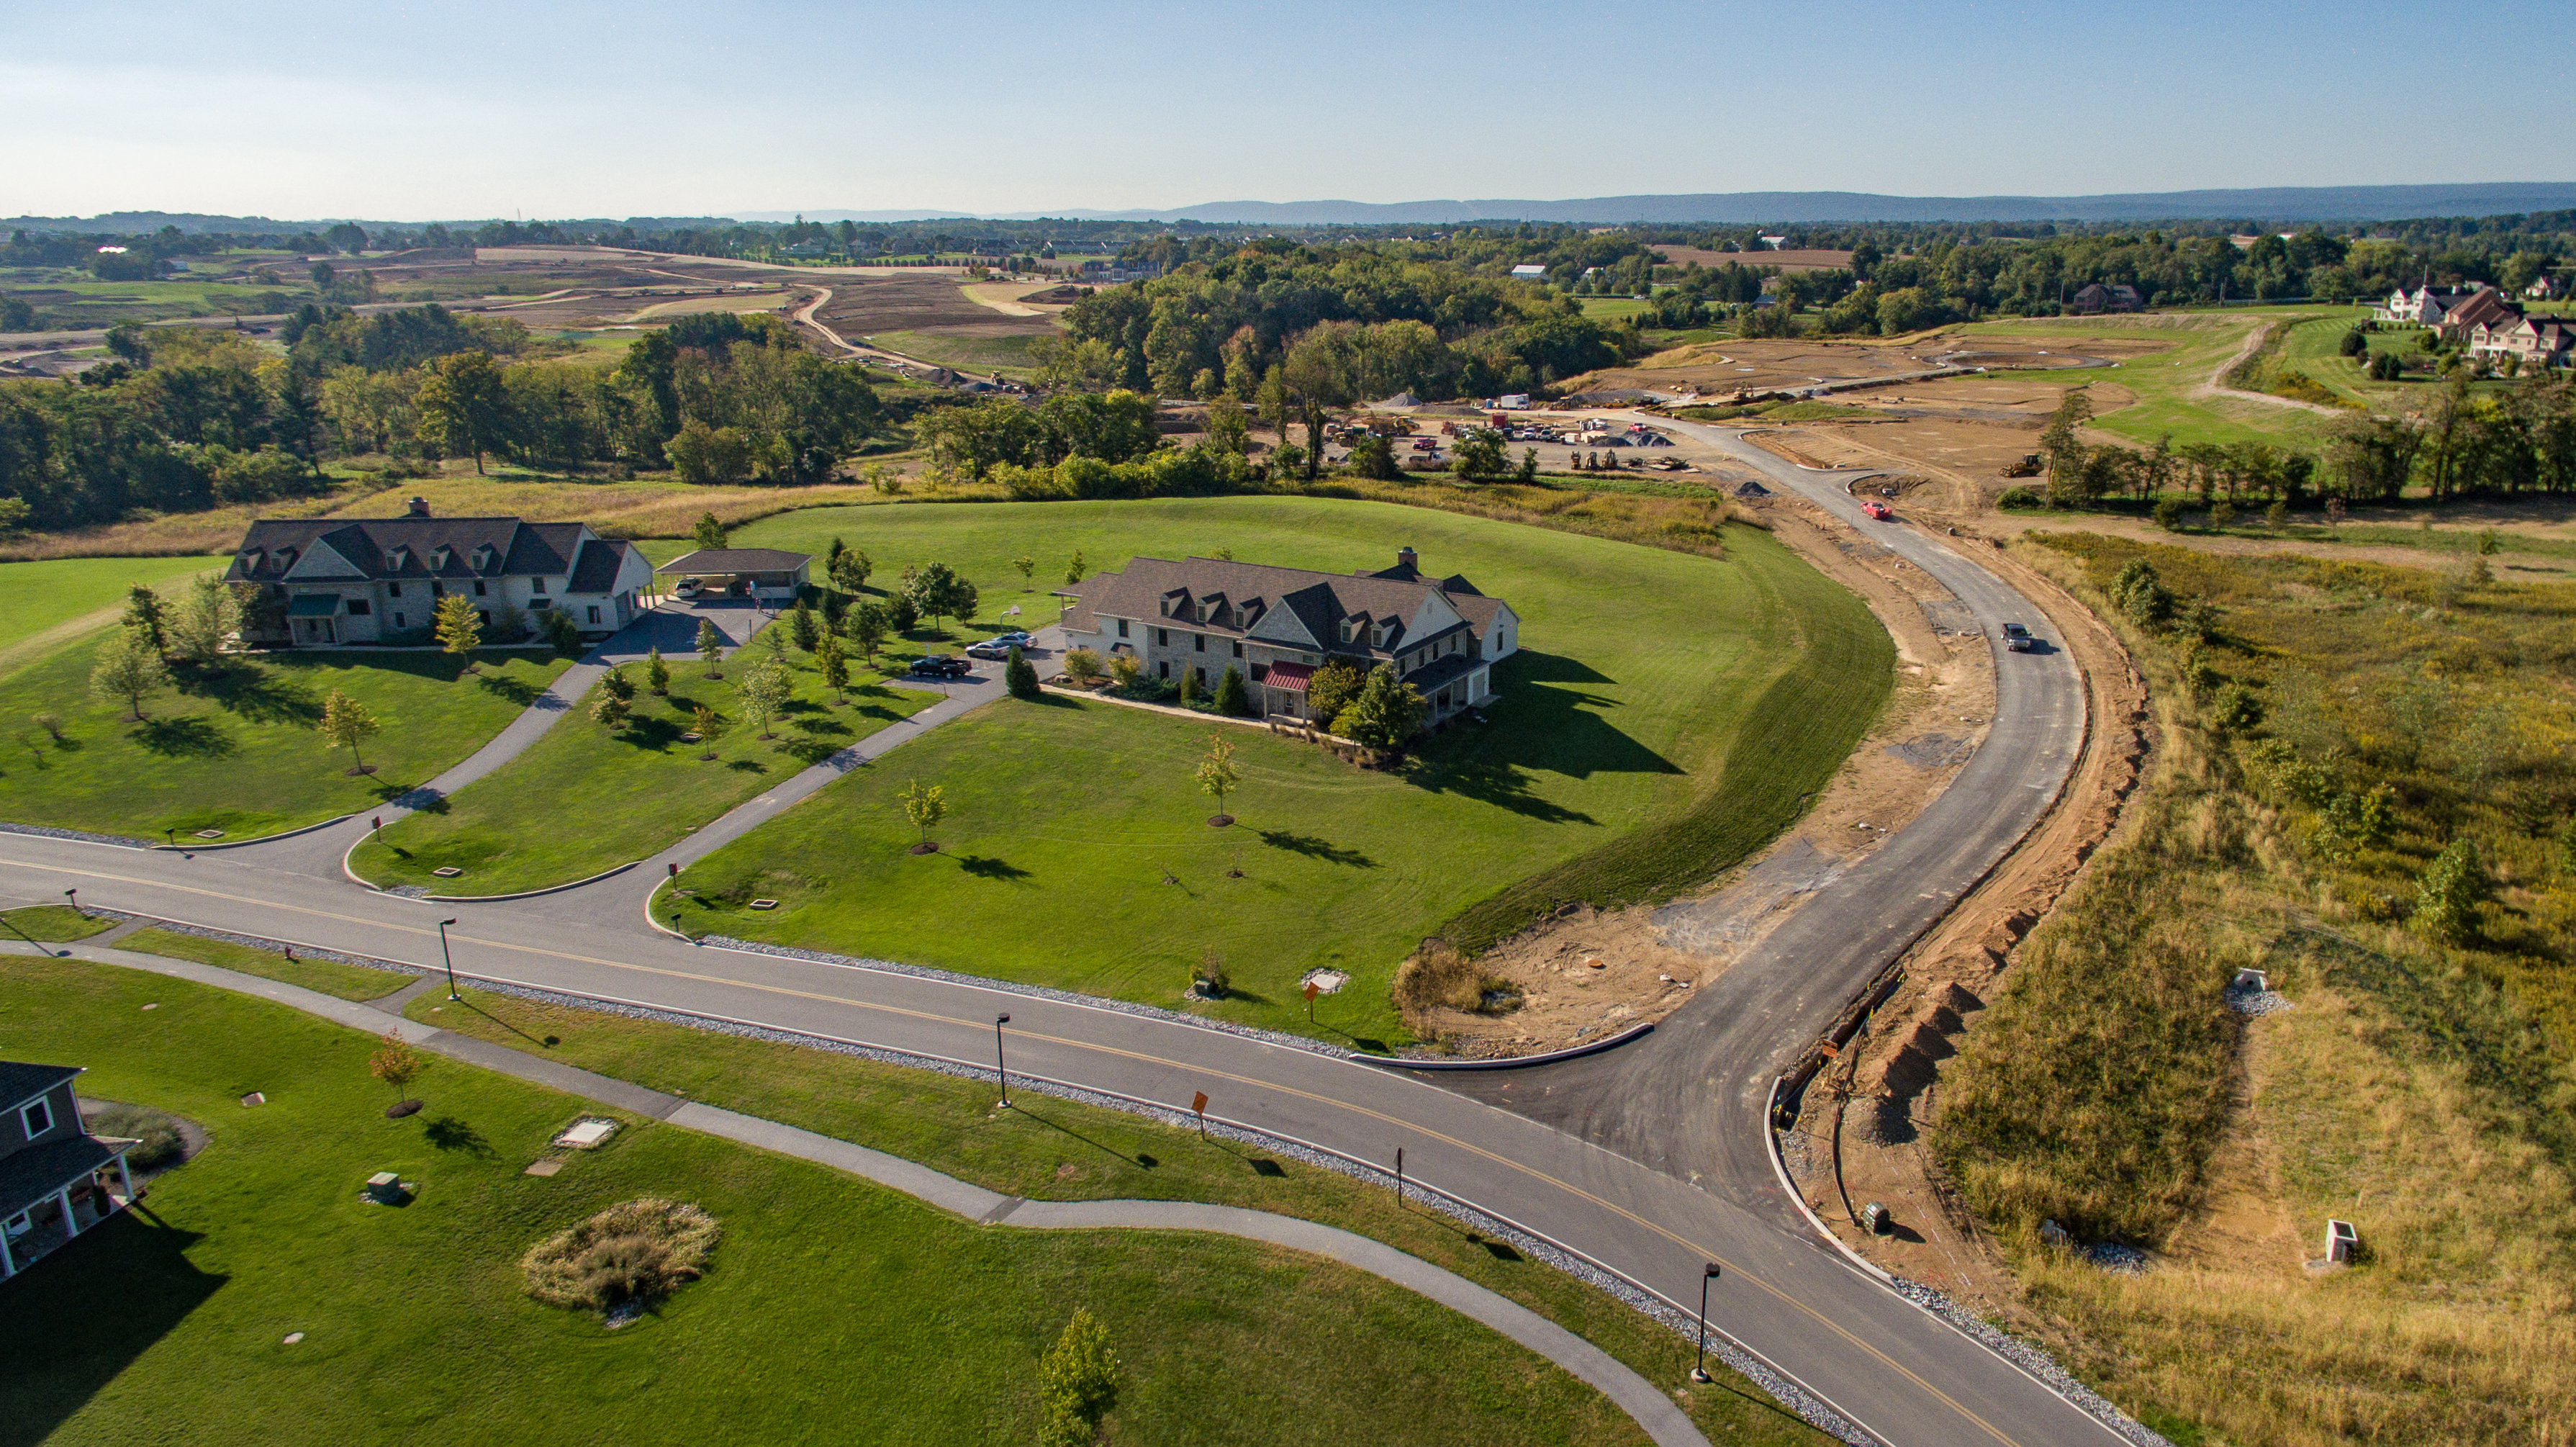 """To provide a quality home life for new students in a safe and nurturing environment, 32 student homes are currently being built on the new """"Legacy Campus."""""""